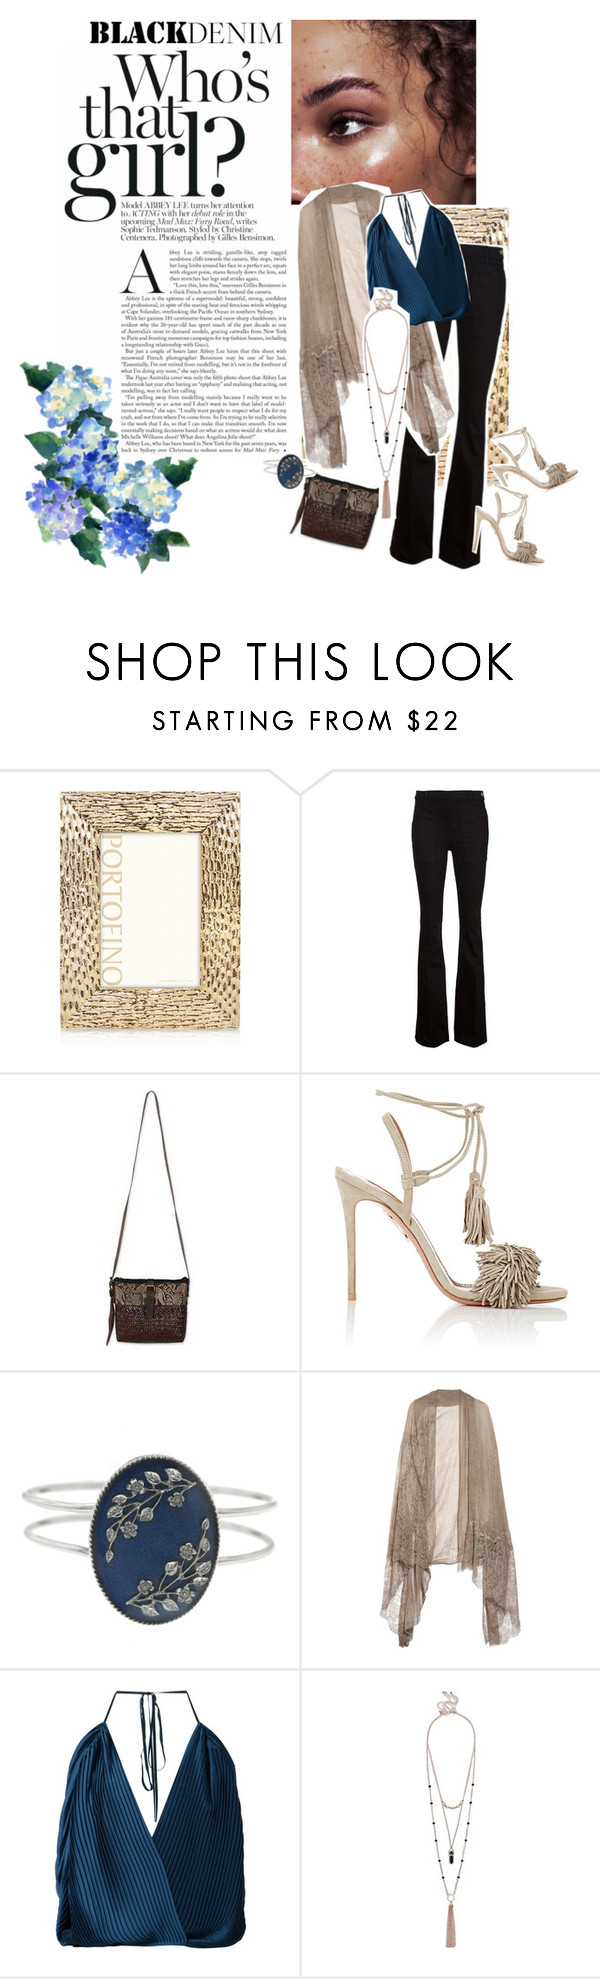 """""""Black denim"""" by beachan ❤ liked on Polyvore featuring мода, Argento SC, Frame Denim, NOVICA, Aquazzura, 1928, Valentino, Tome, GUESS и women's clothing"""